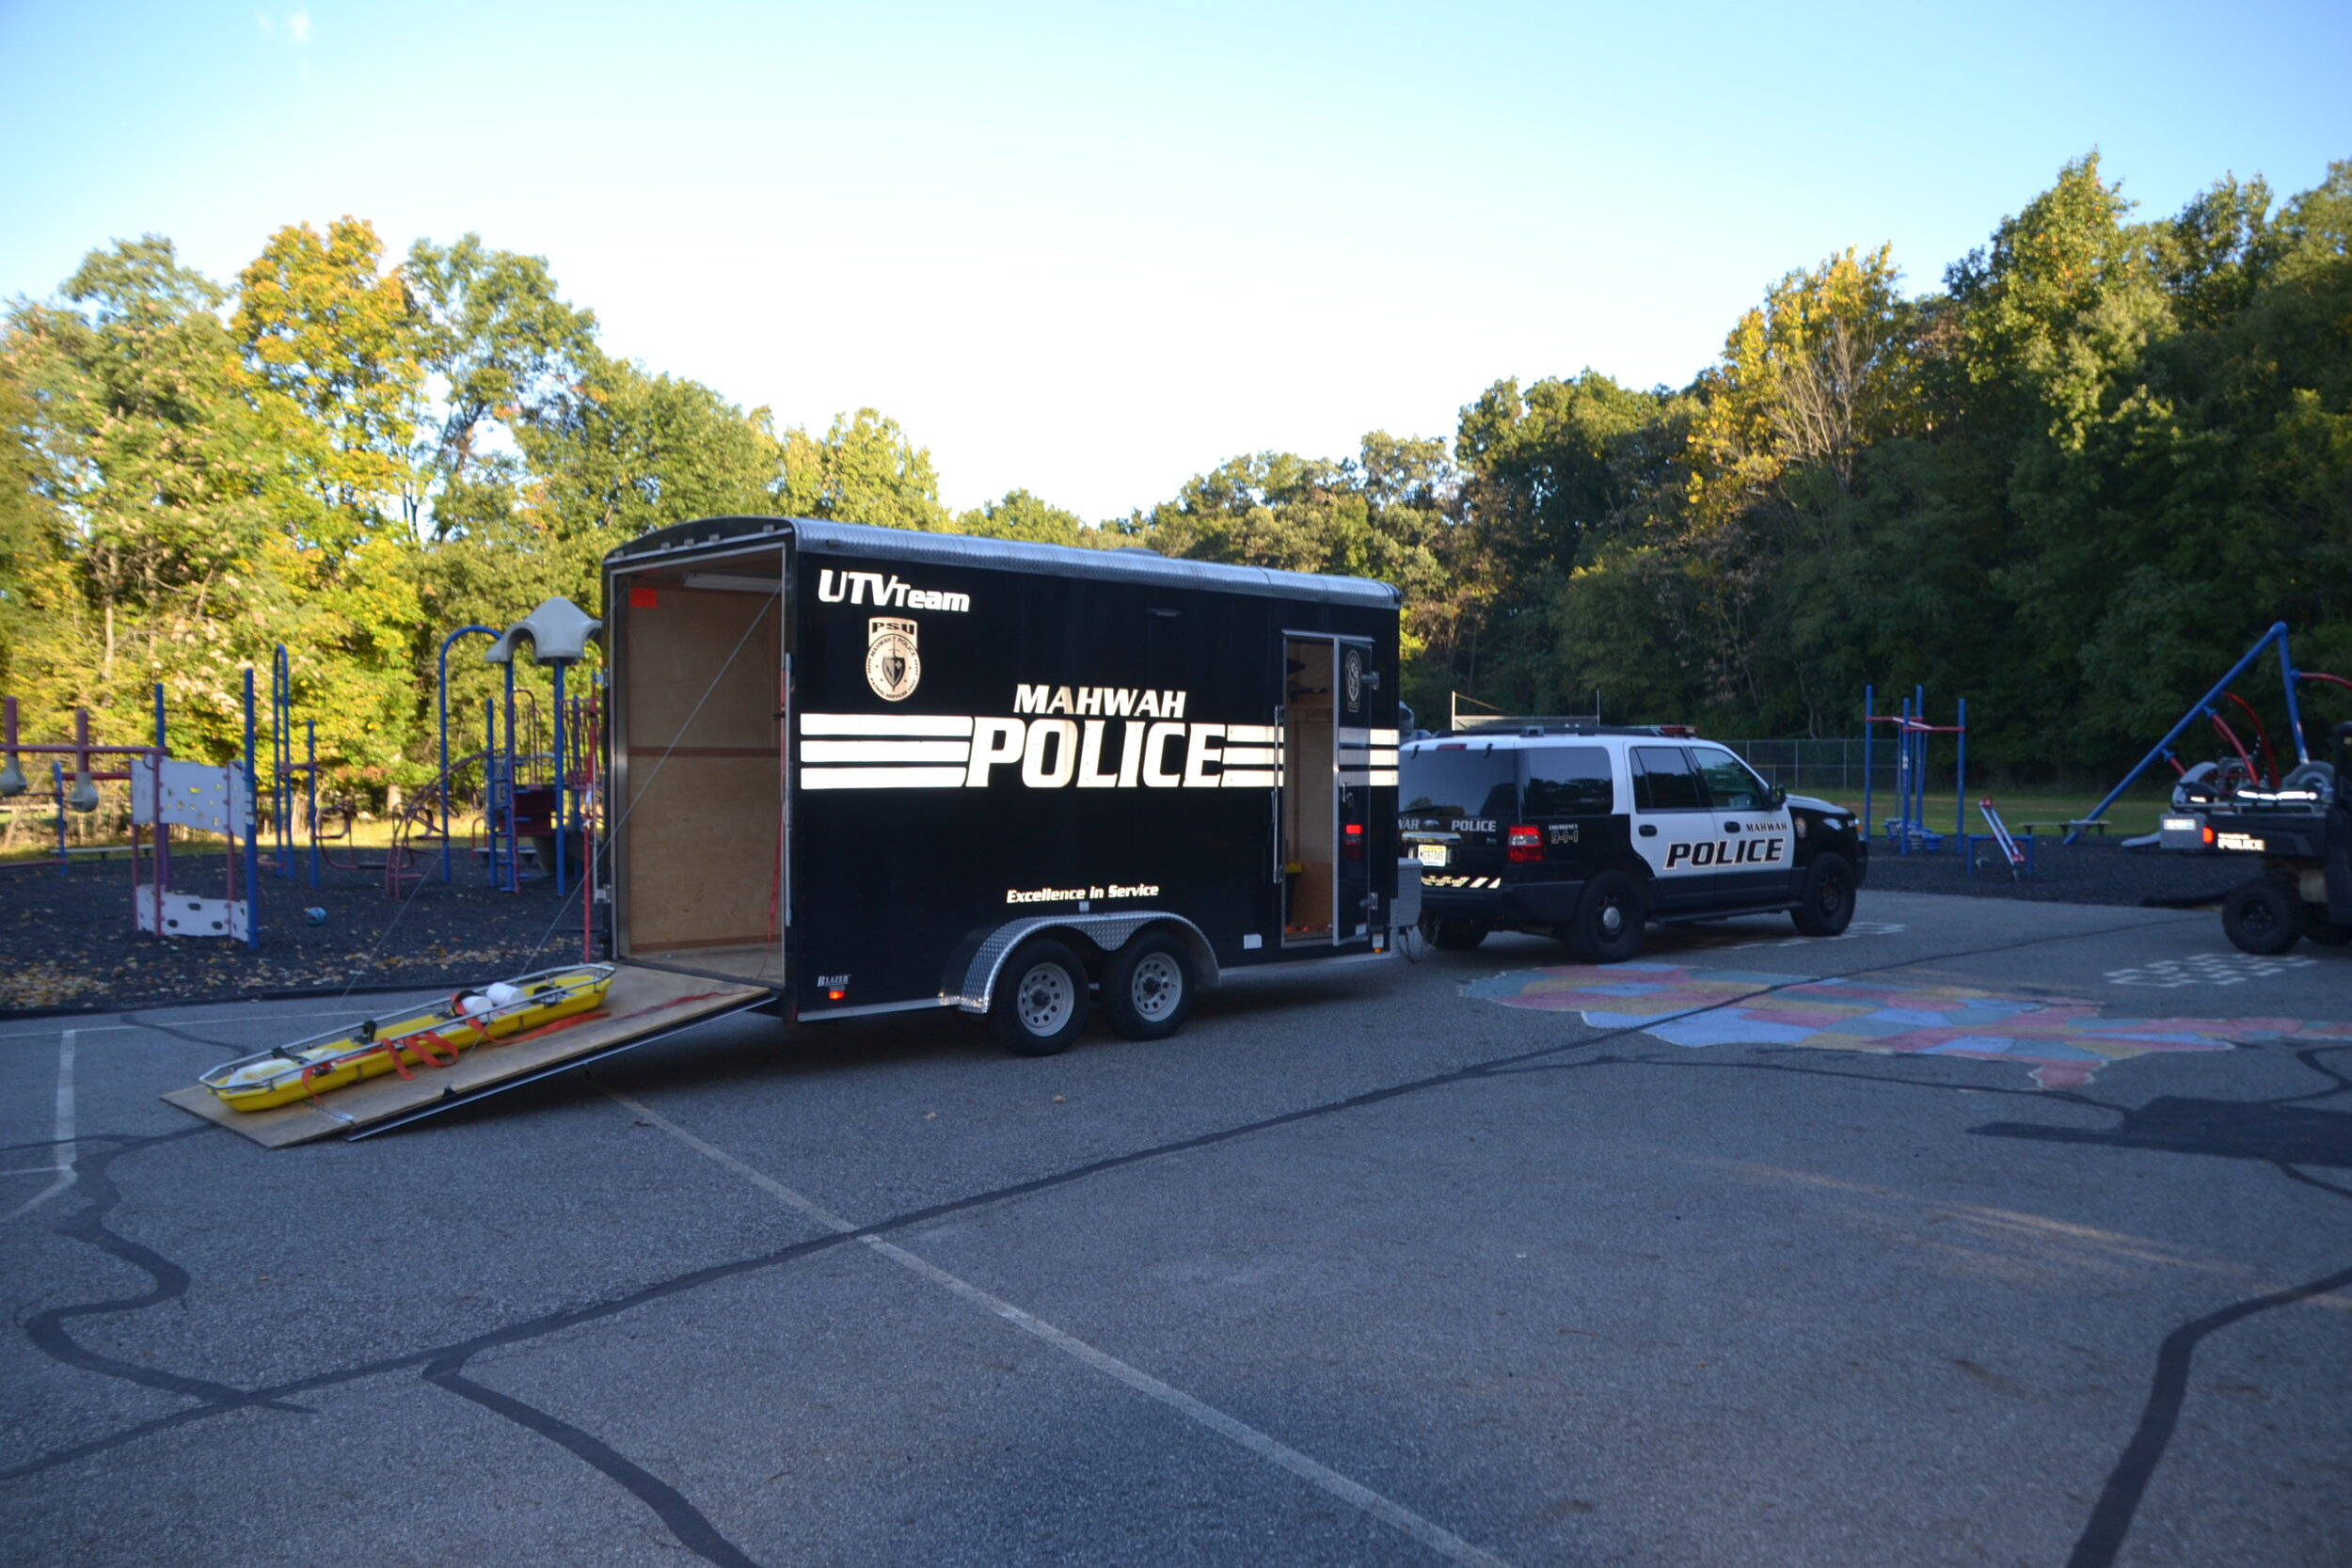 Mahwah PD UTVteam truck and trailer